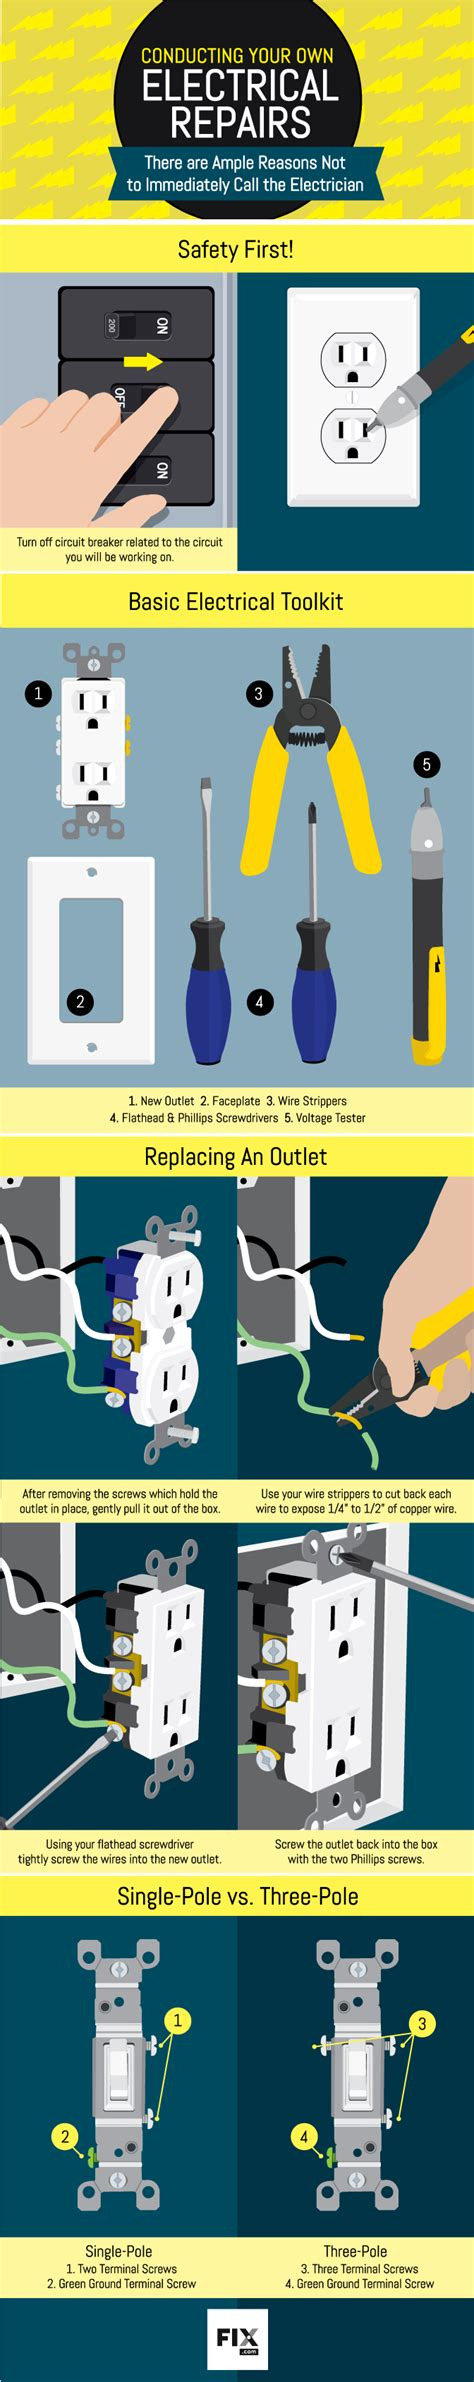 3 phase wire colors wiring diagram